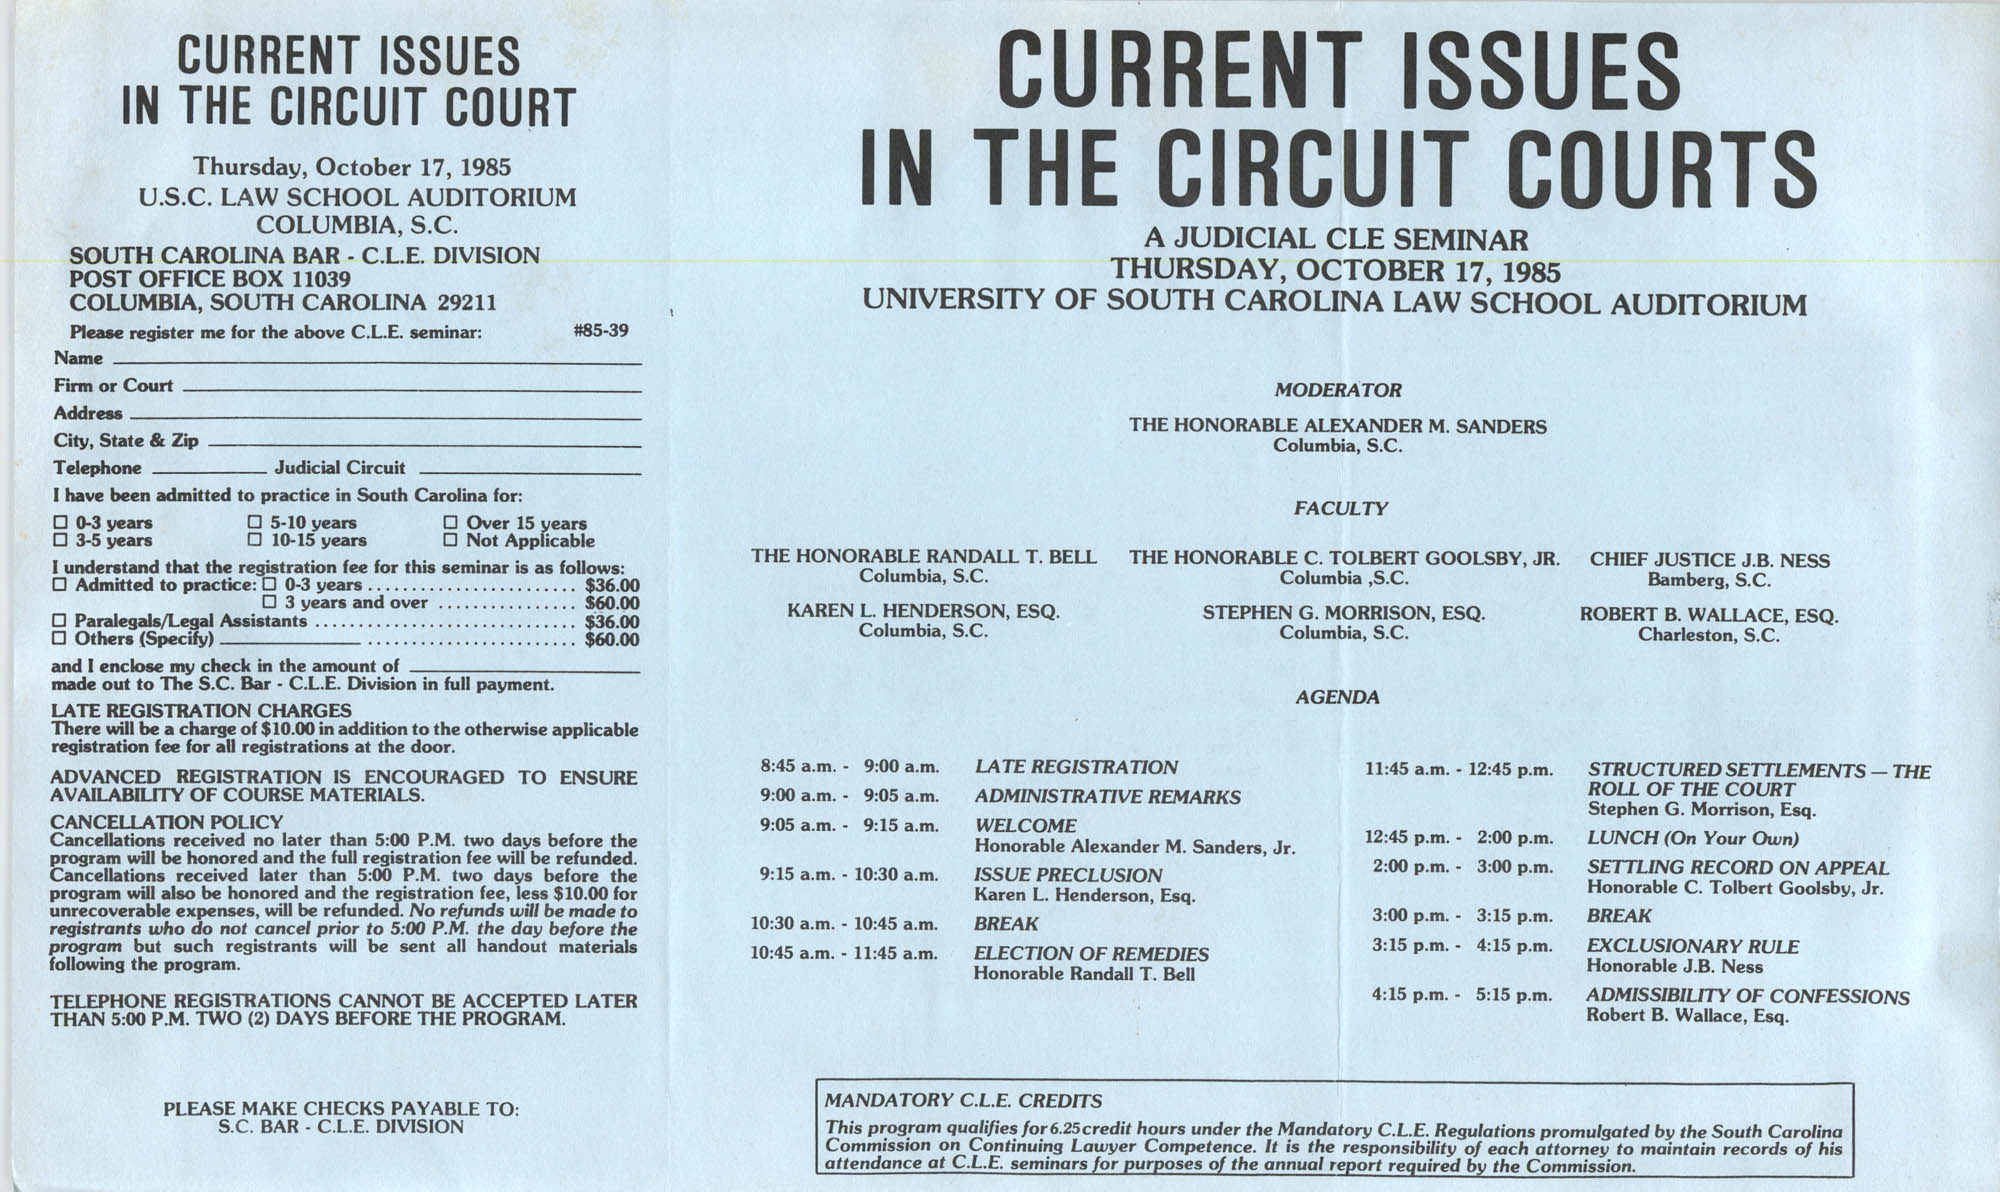 Current Issues in the Circuit Courts, Continuing Judicial Education Seminar Pamphlet, October 17, 1985